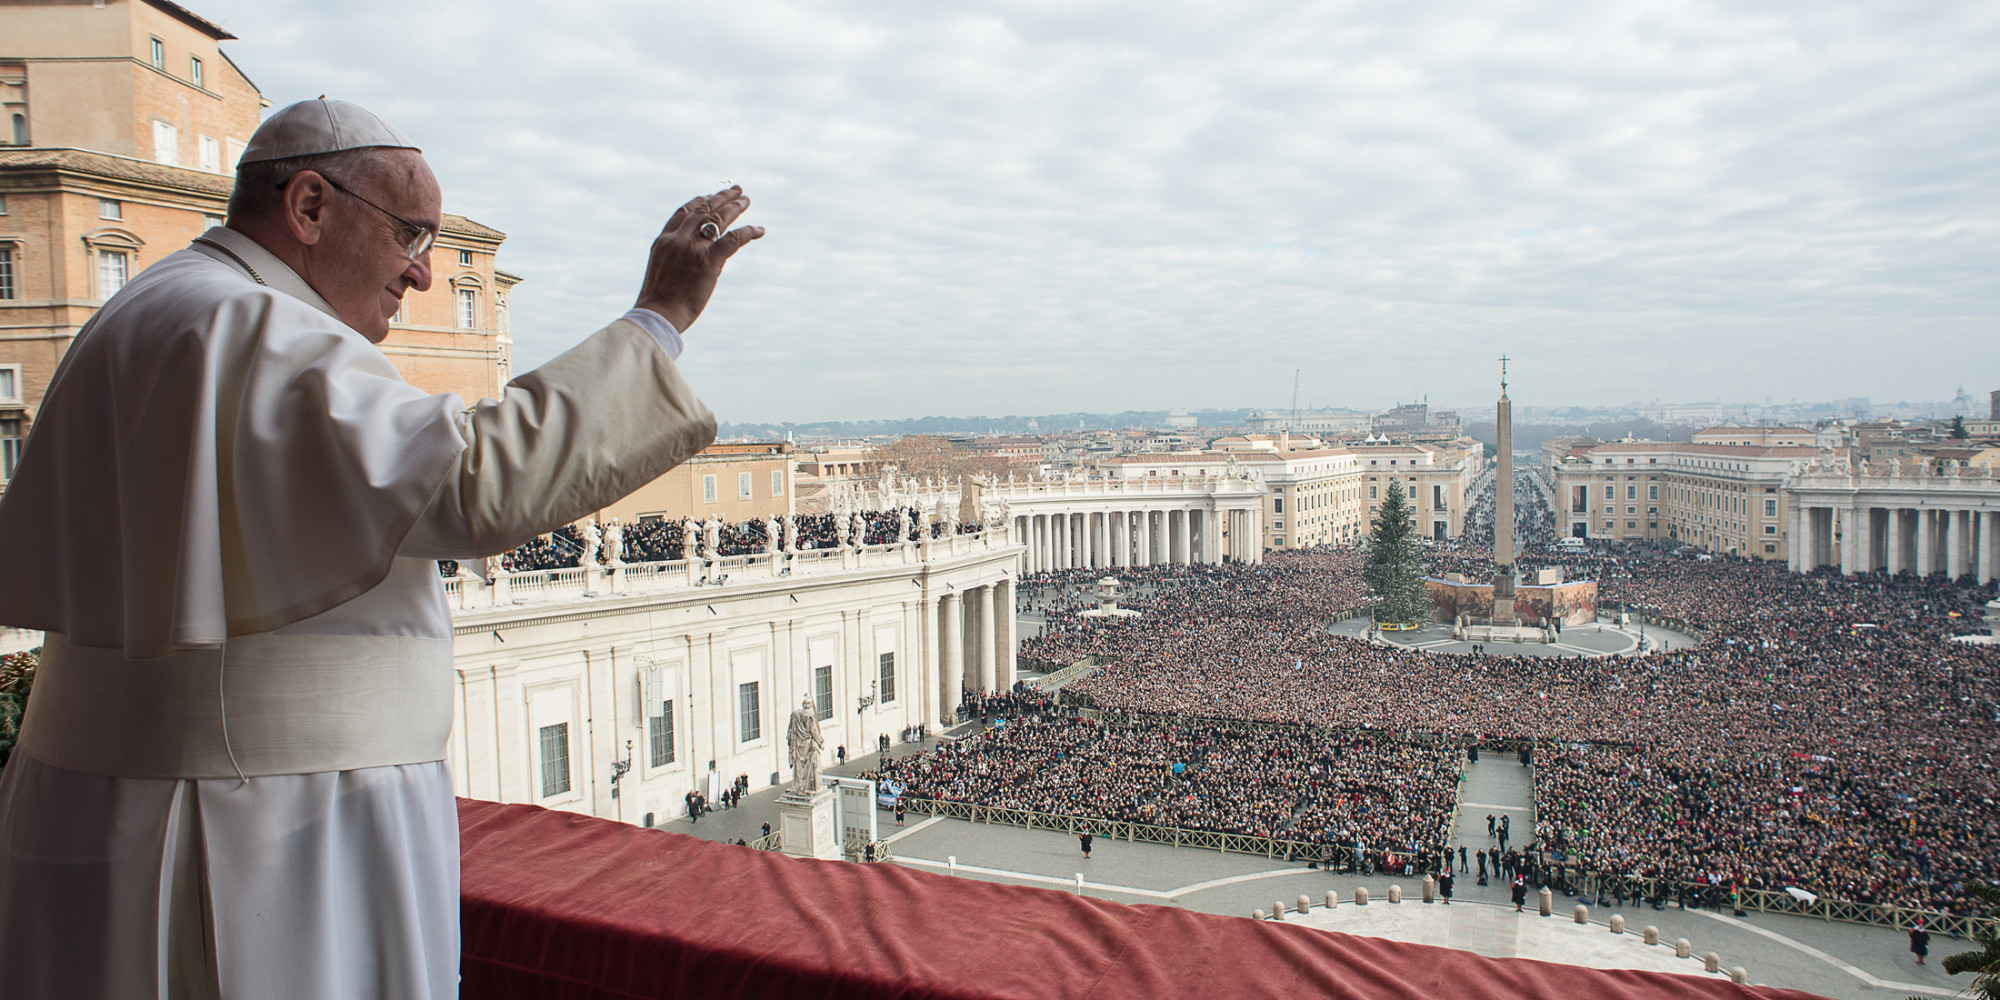 Nearly 6 million people traveled to the vatican to see - Finestra del papa ...